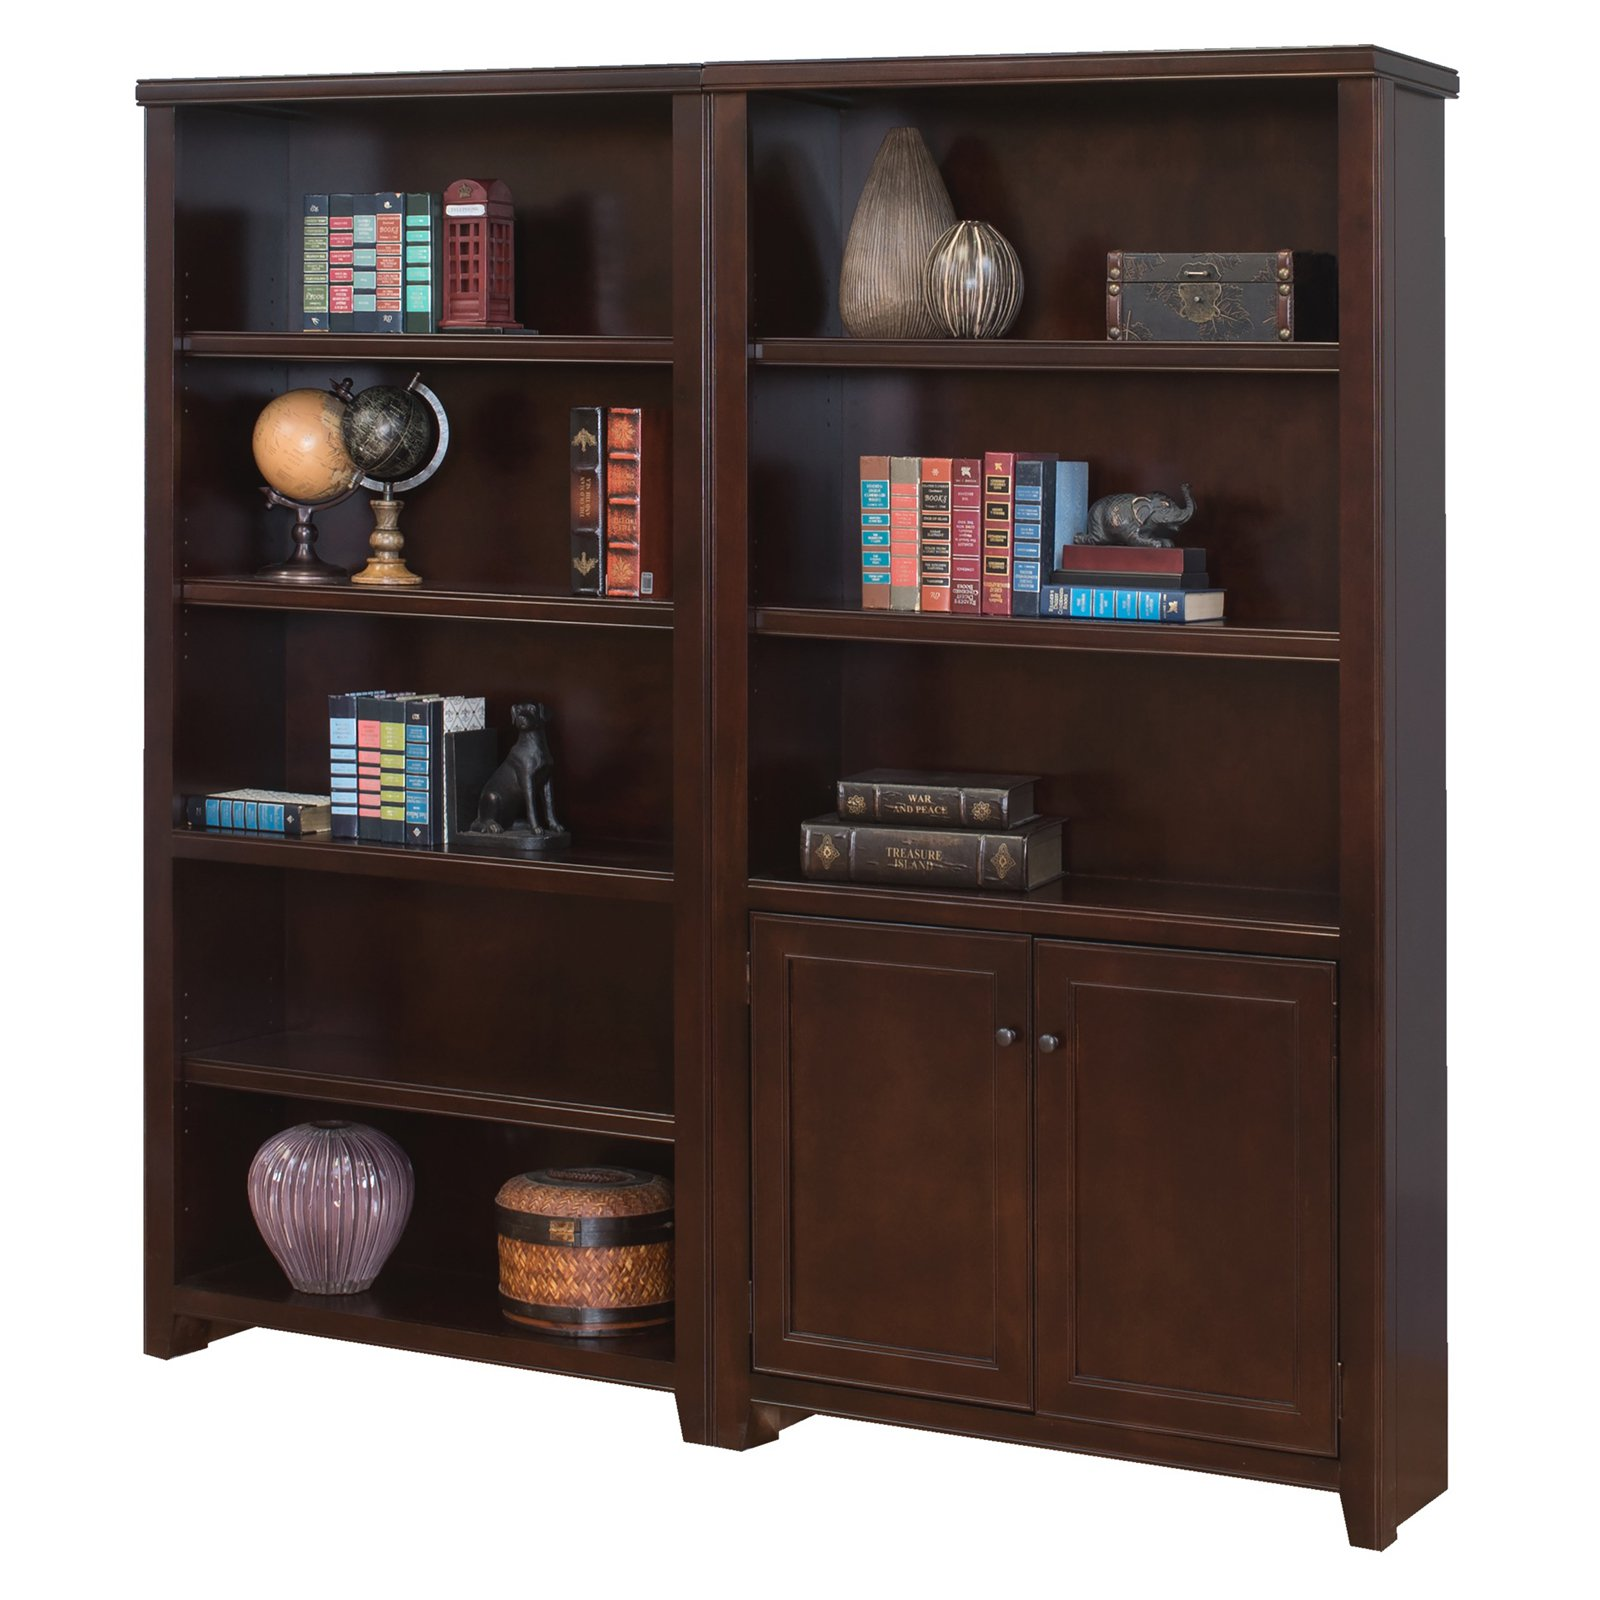 Martin Furniture Tribeca Loft Wood Wall Bookcase with 2 Doors - Cherry